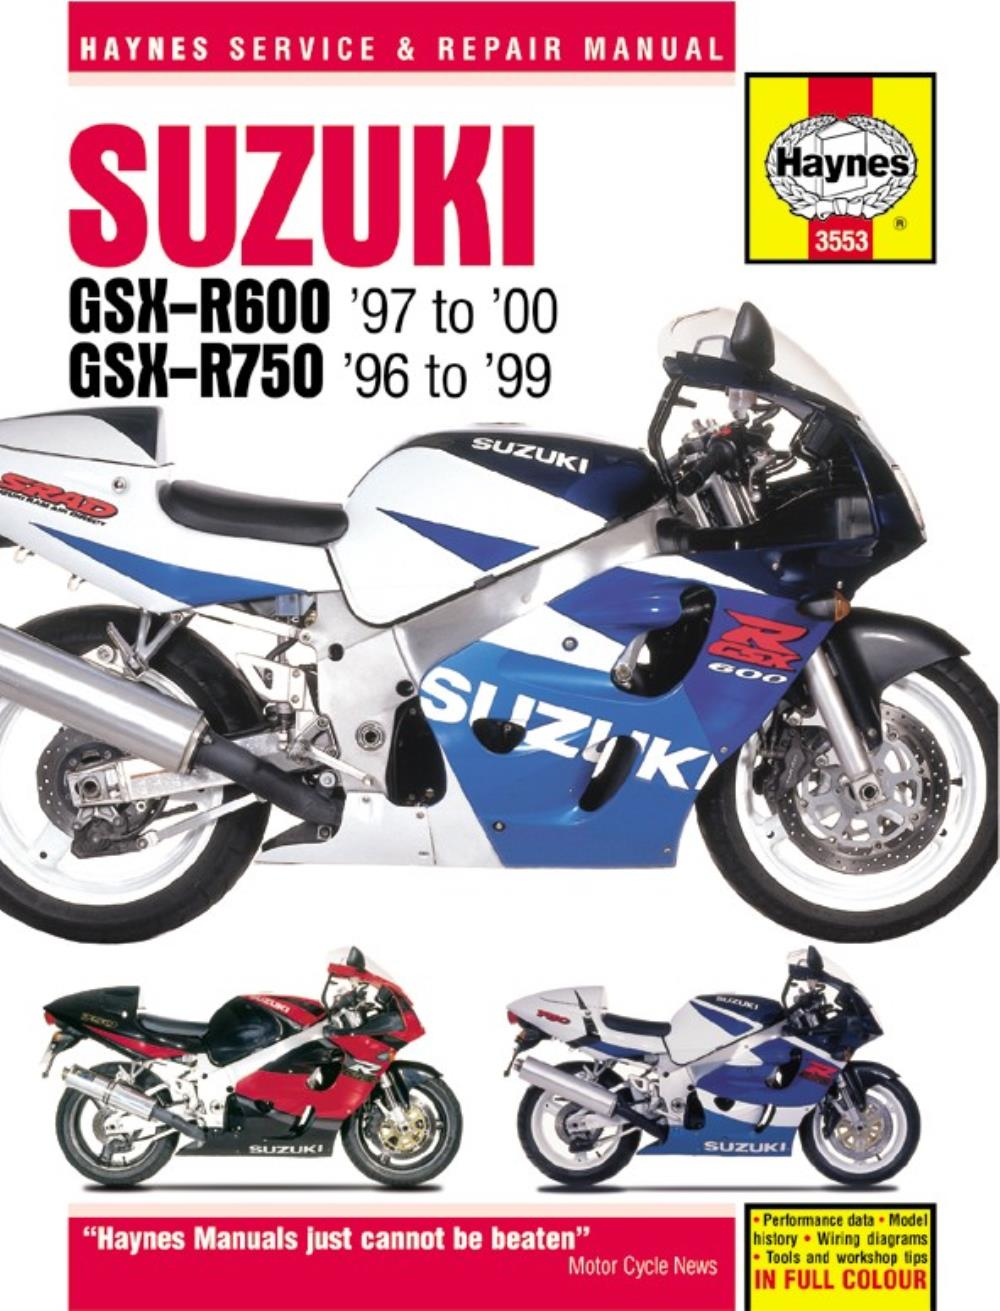 Manual Haynes for 1996 Suzuki GSX-R 750 T (SRAD) (L/C) | eBay